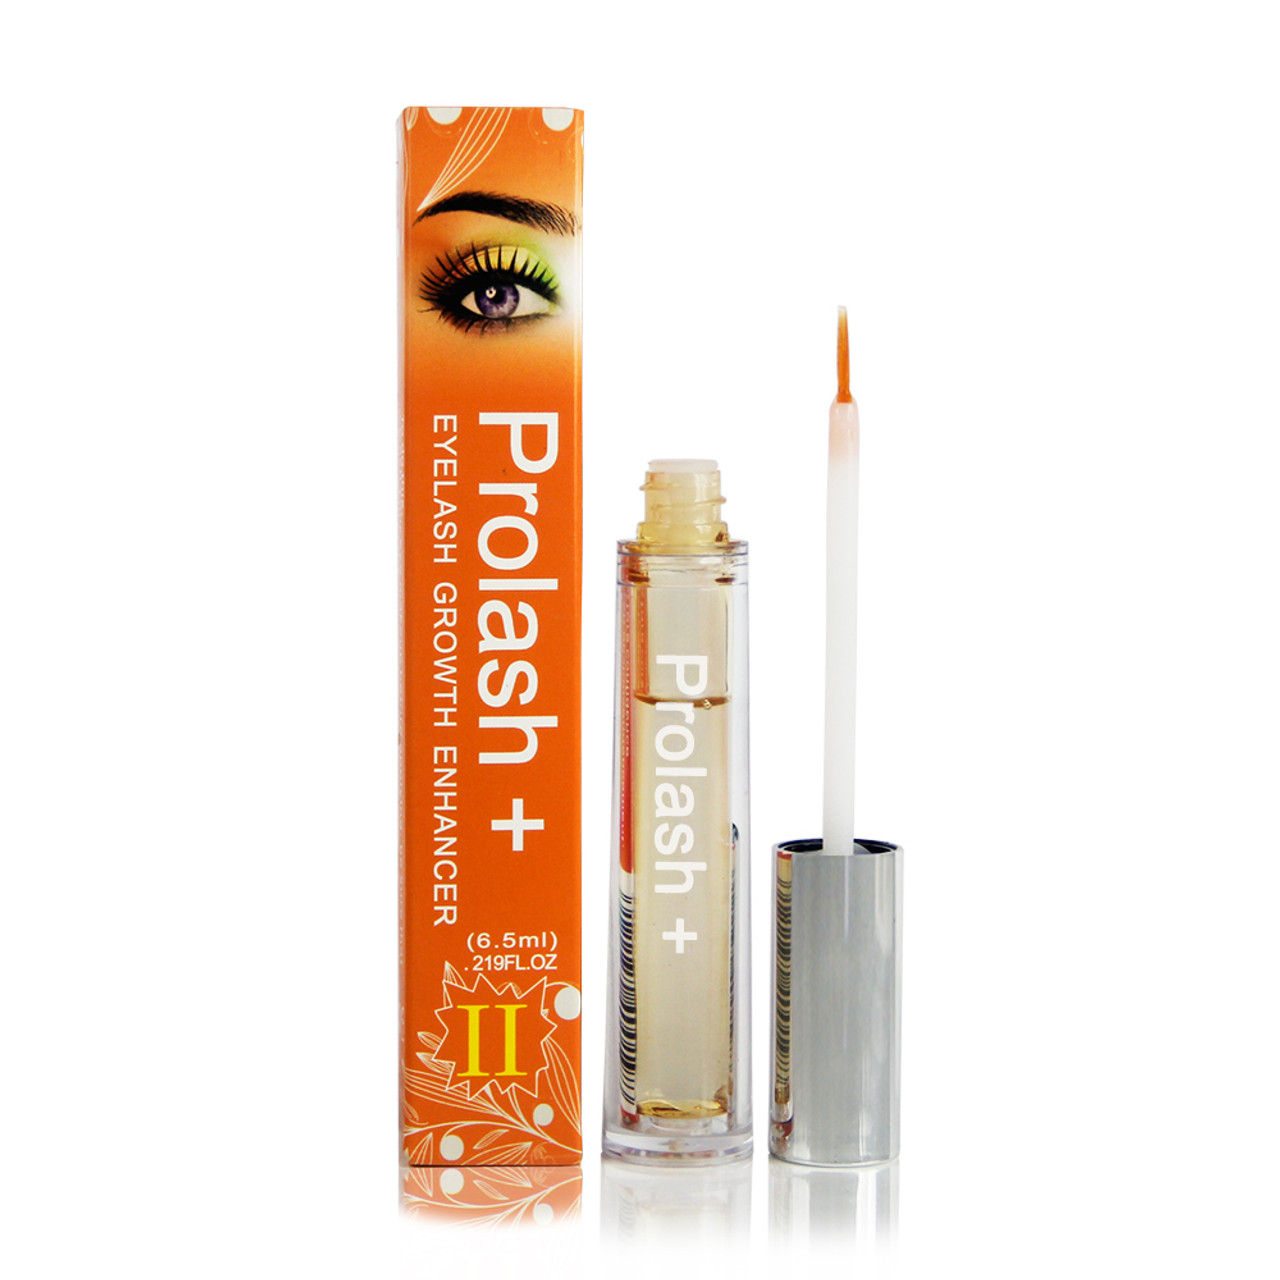 2bc05c7a993 ... Prolash+ Best Eyelash Serum Eyelashes Extensions Growth Serum EPM  Enhancing Eyebrow Enhancer 7 Days Longer No ...